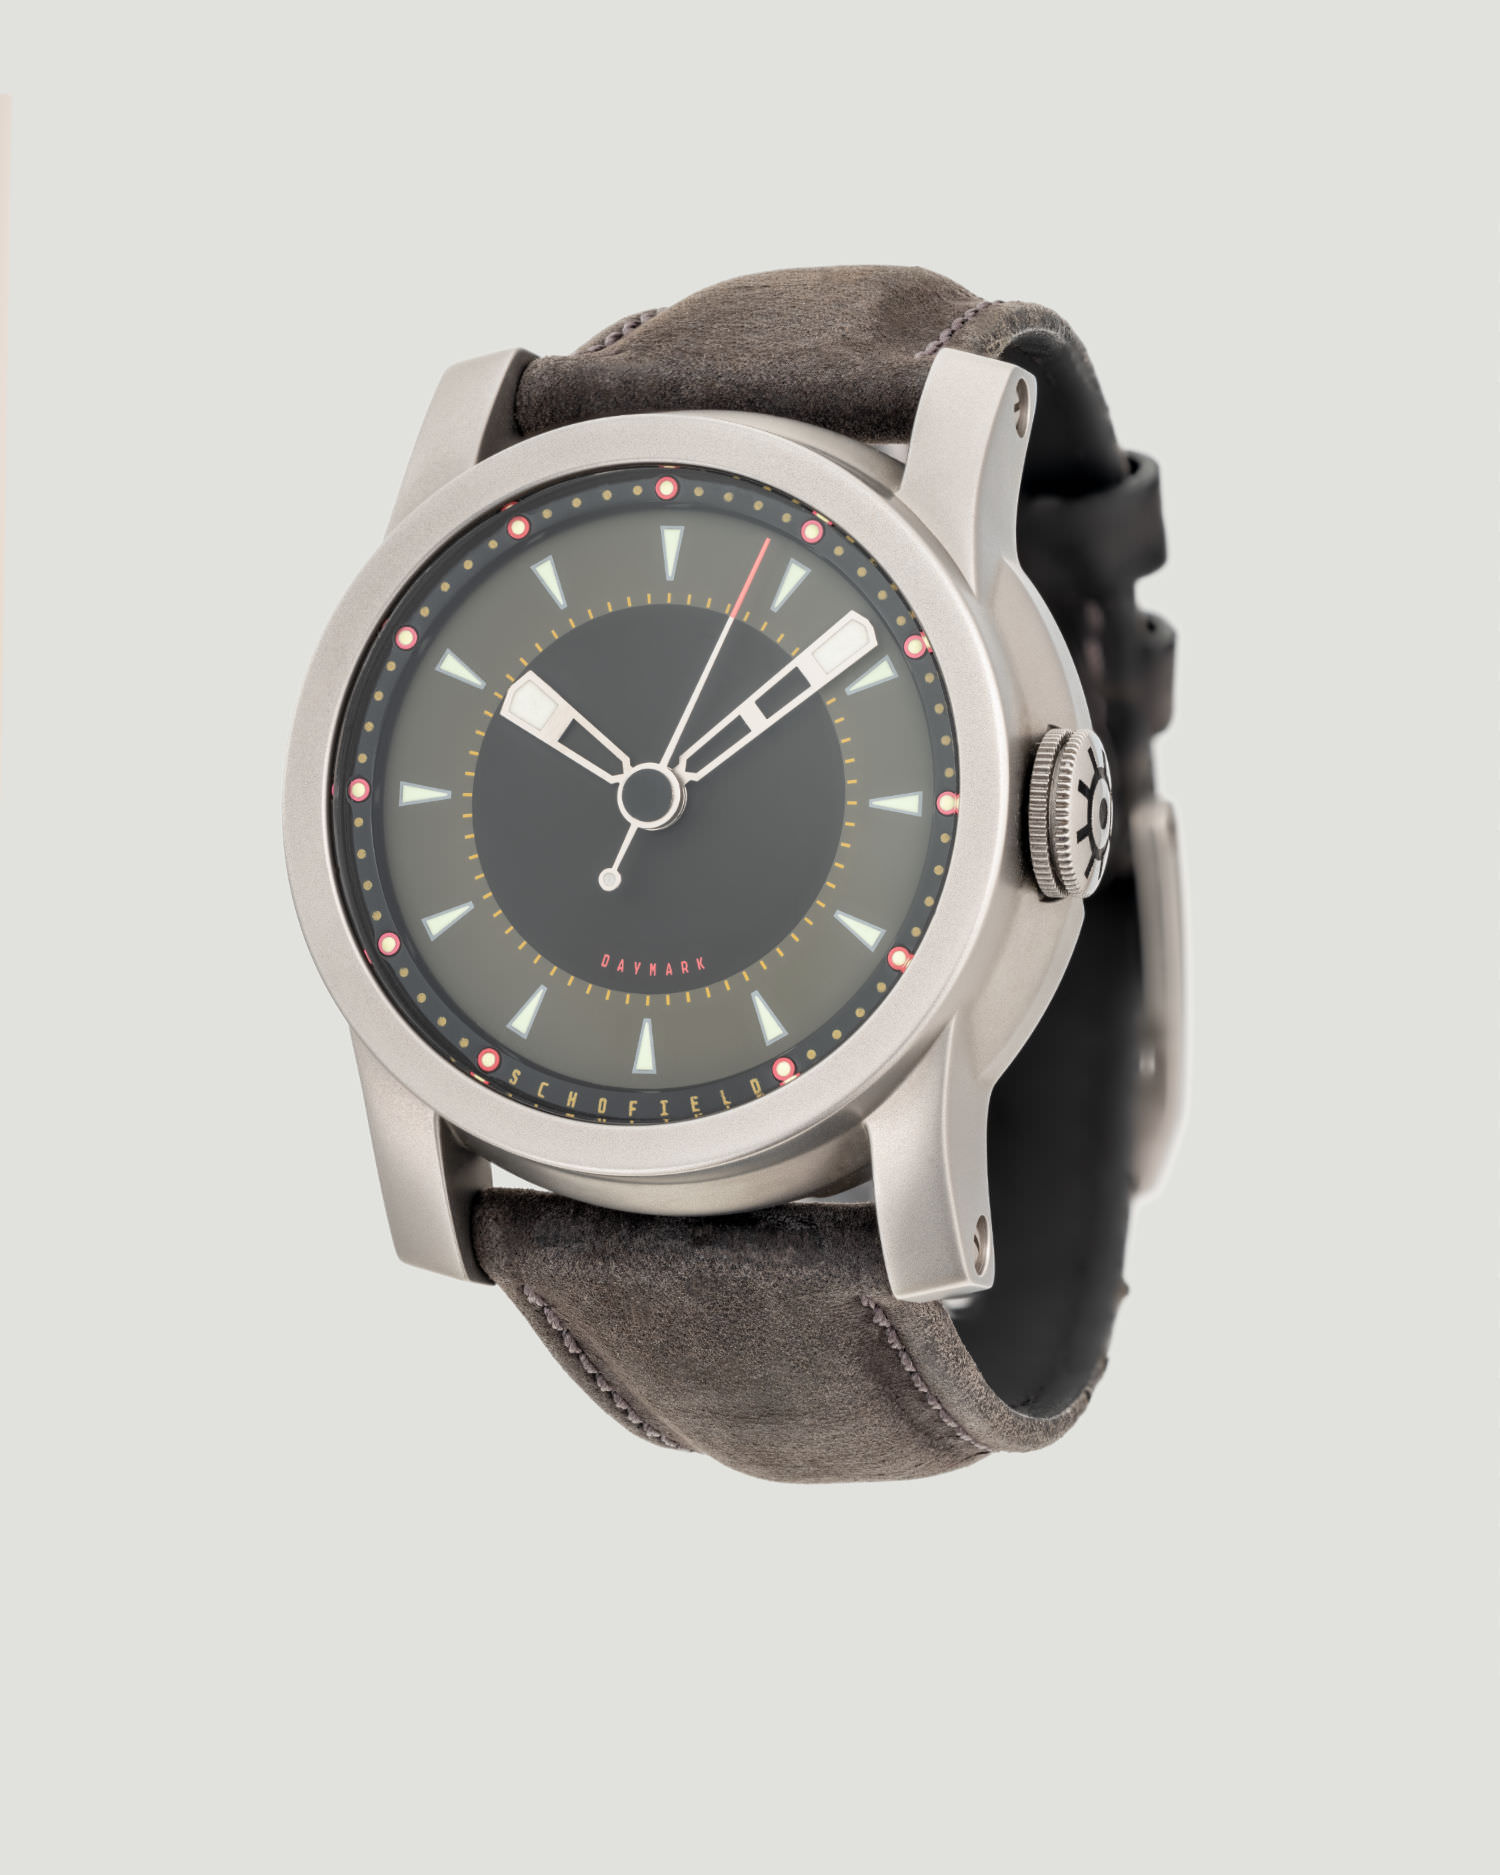 Watches with green dials